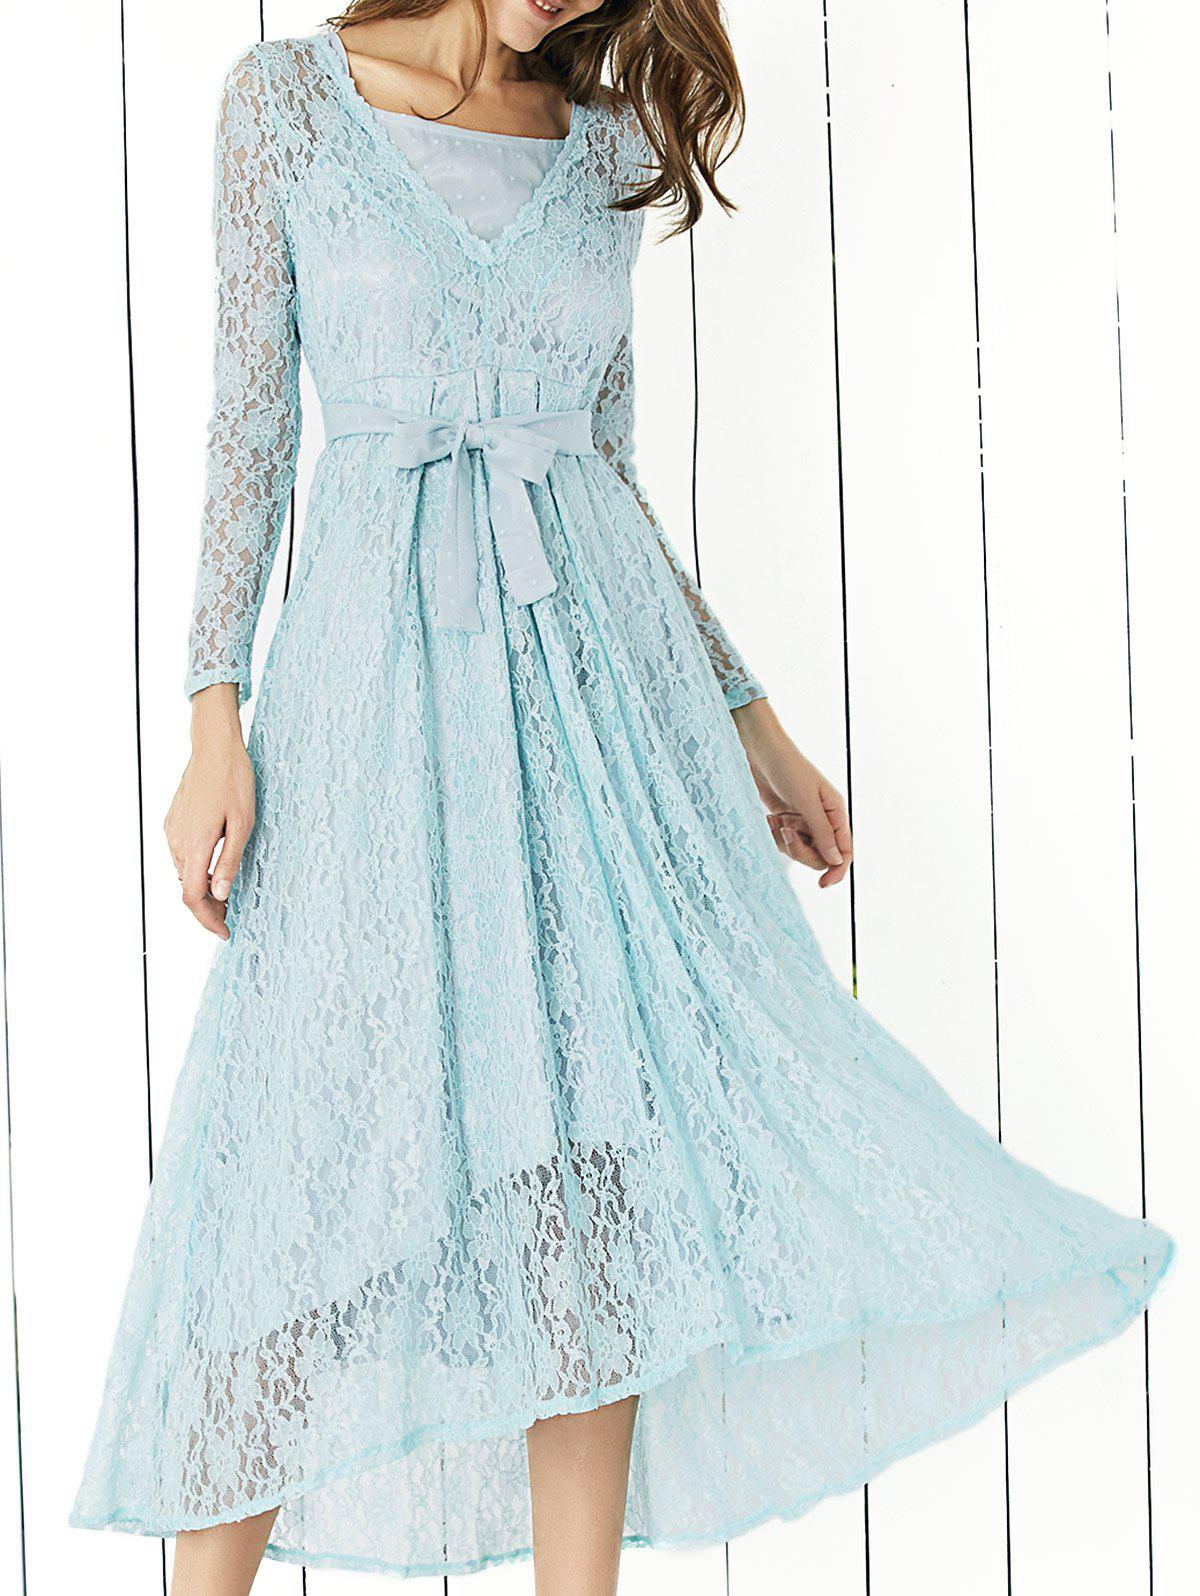 Elegant Long Sleeve Bowknot Tie Belted Lace Dress For Women - BLUE XL